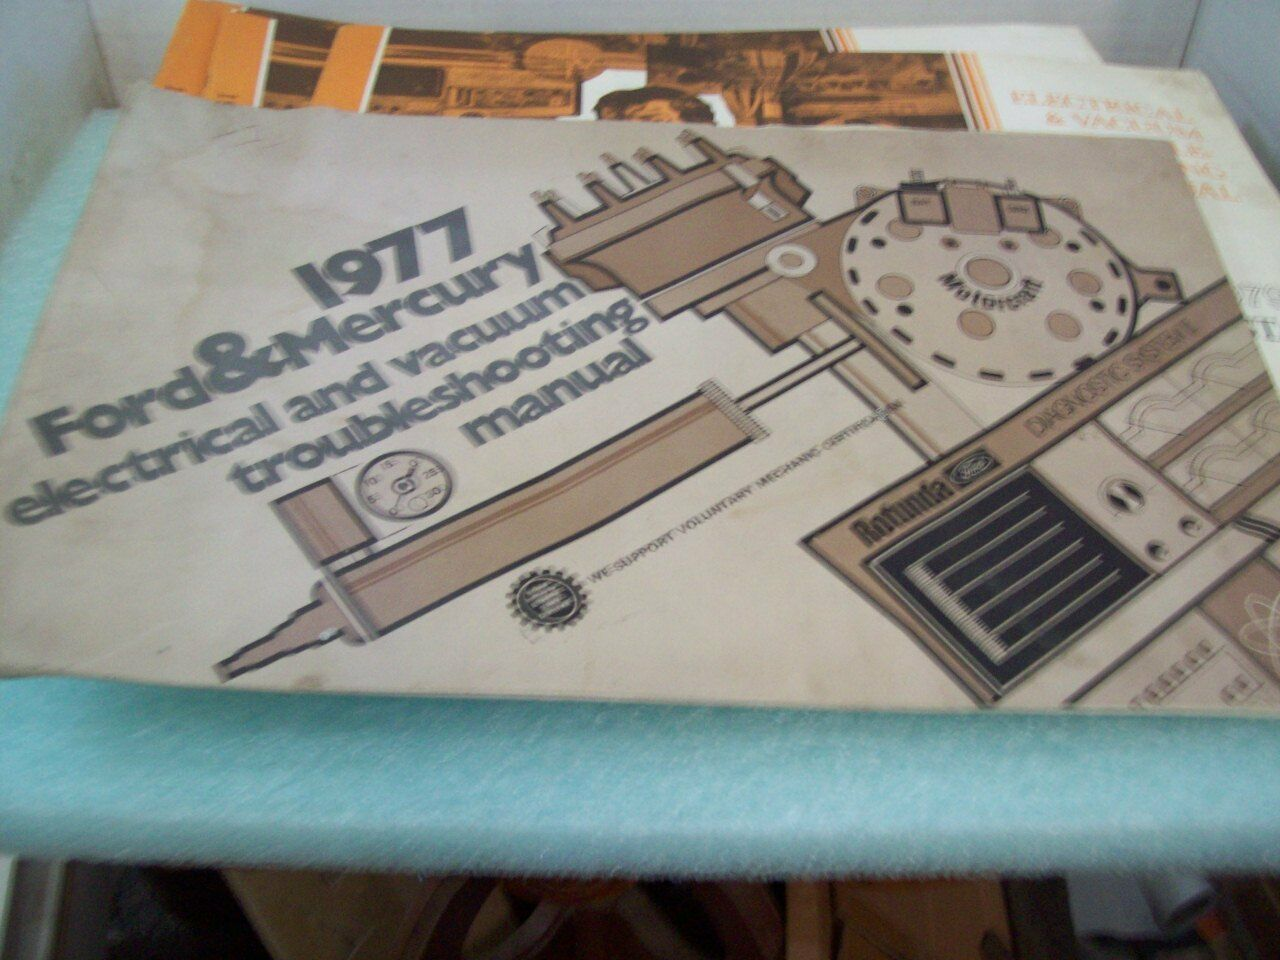 1977 Ford & Mercury Electrical Vacuum Trouble Shooting Manual